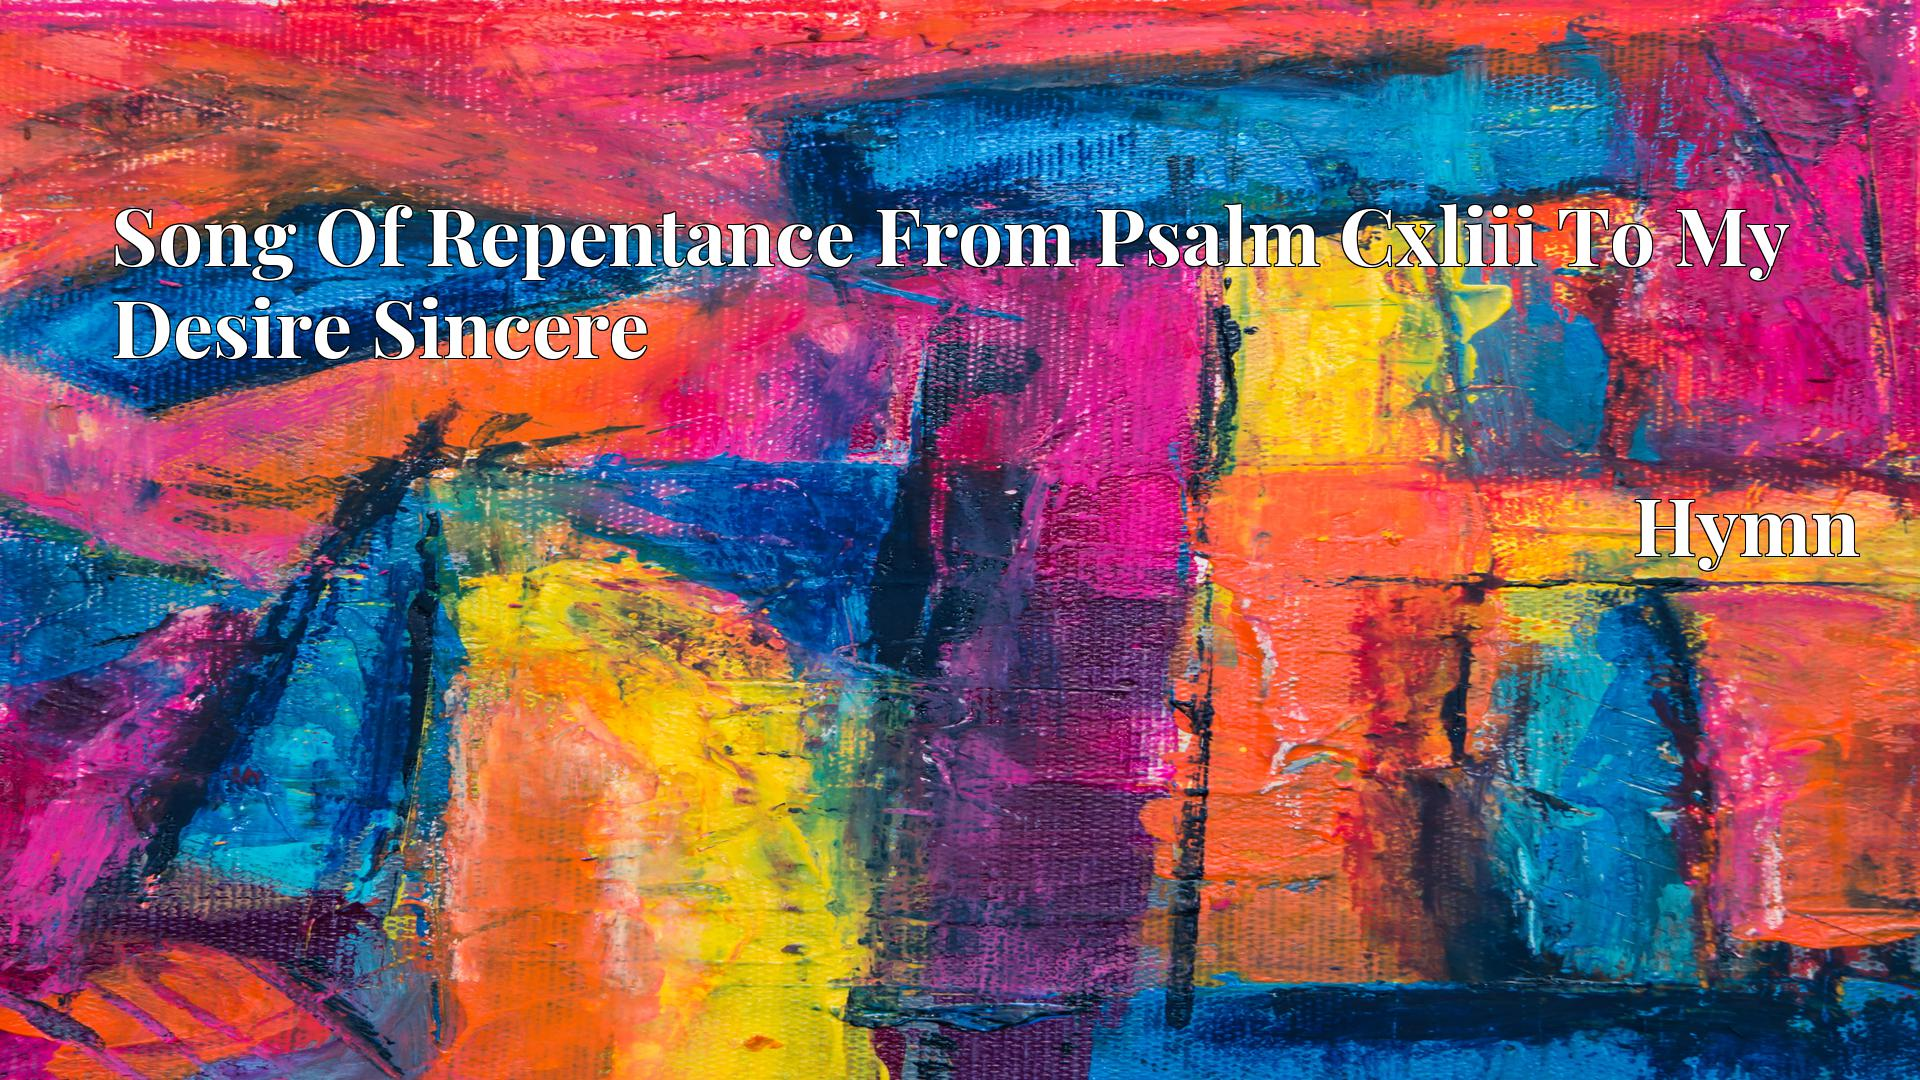 Song Of Repentance From Psalm Cxliii To My Desire Sincere - Hymn